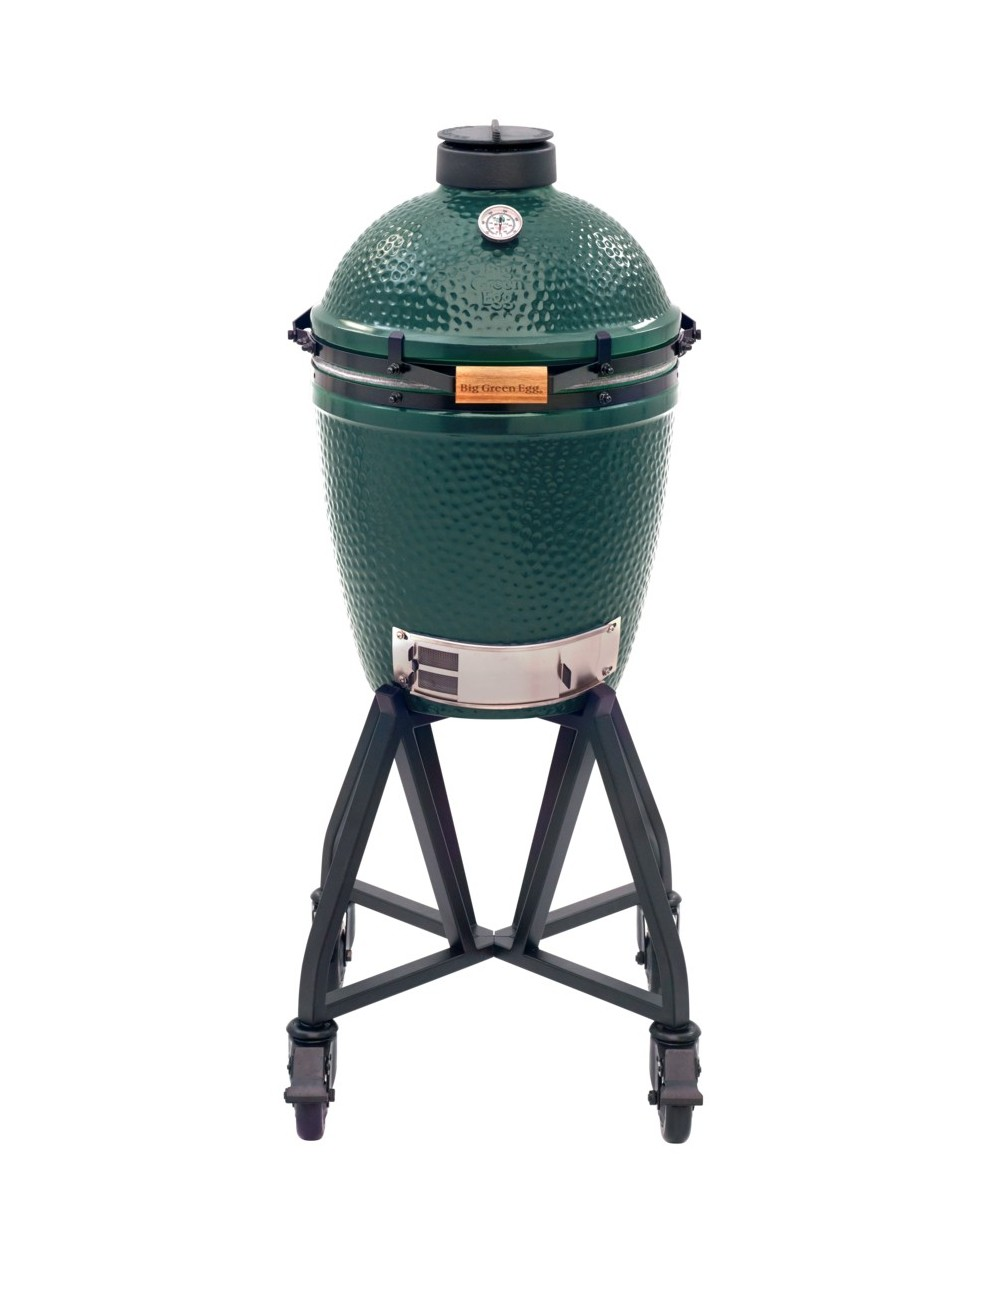 Big Green Egg - Medium Pack Original